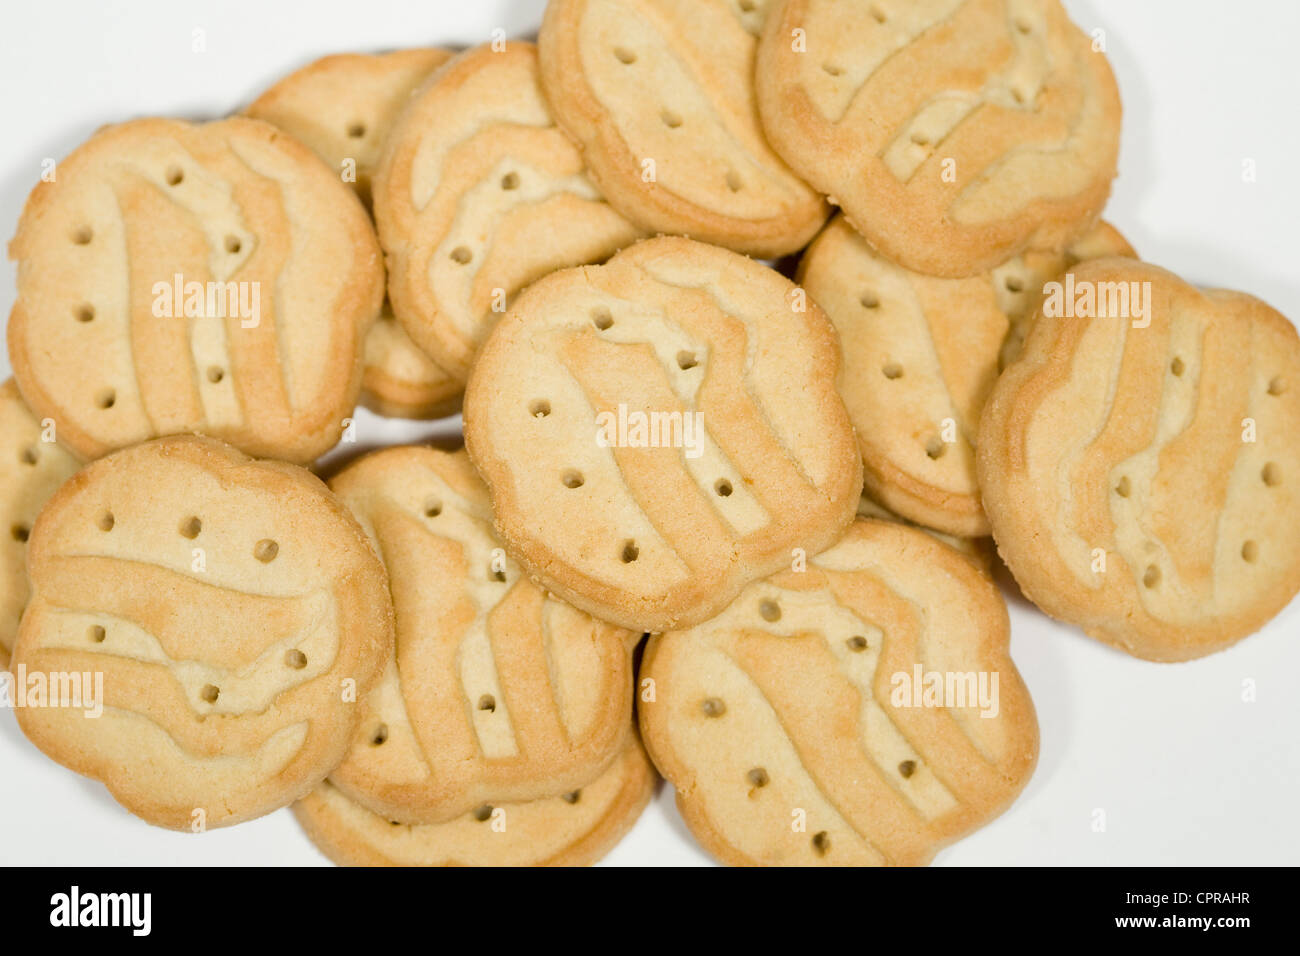 Trefoils Girl Scout cookies.  Stock Photo